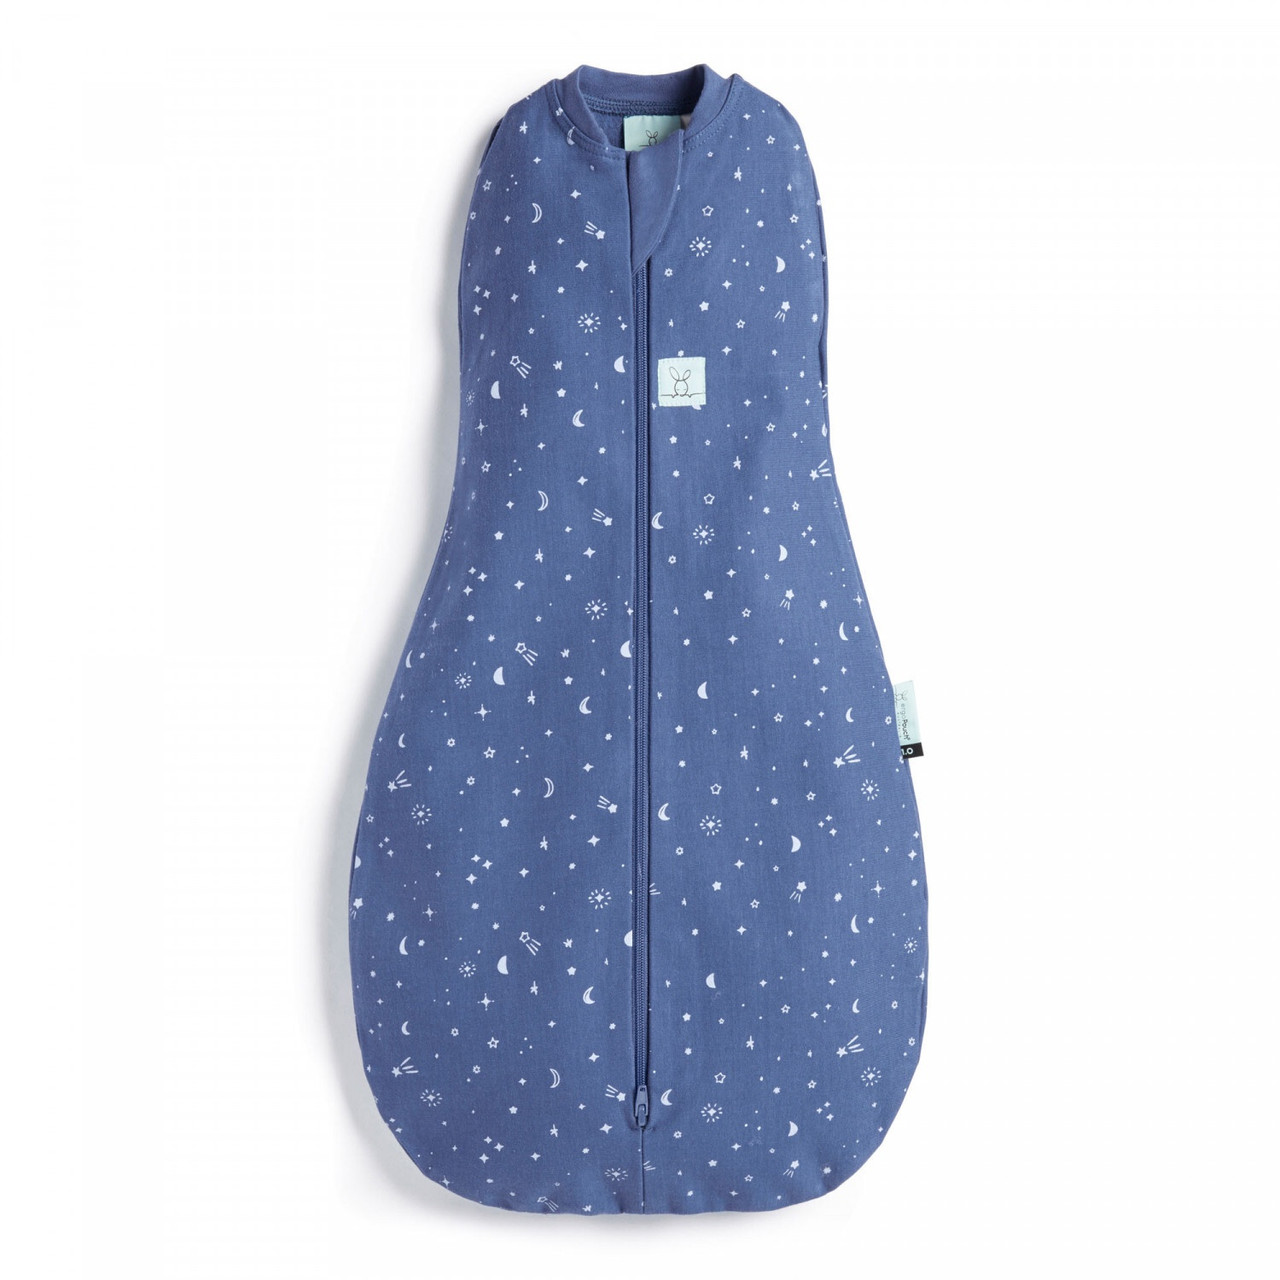 Ergopouch Cocoon Swaddle Bag 1.0 tog 6-12 Months  NIGHT SKY at Baby Barn Discounts ErgoPouch cocoon 1.0 tog is an escape-proof swaddle which converts to a sleeping bag.